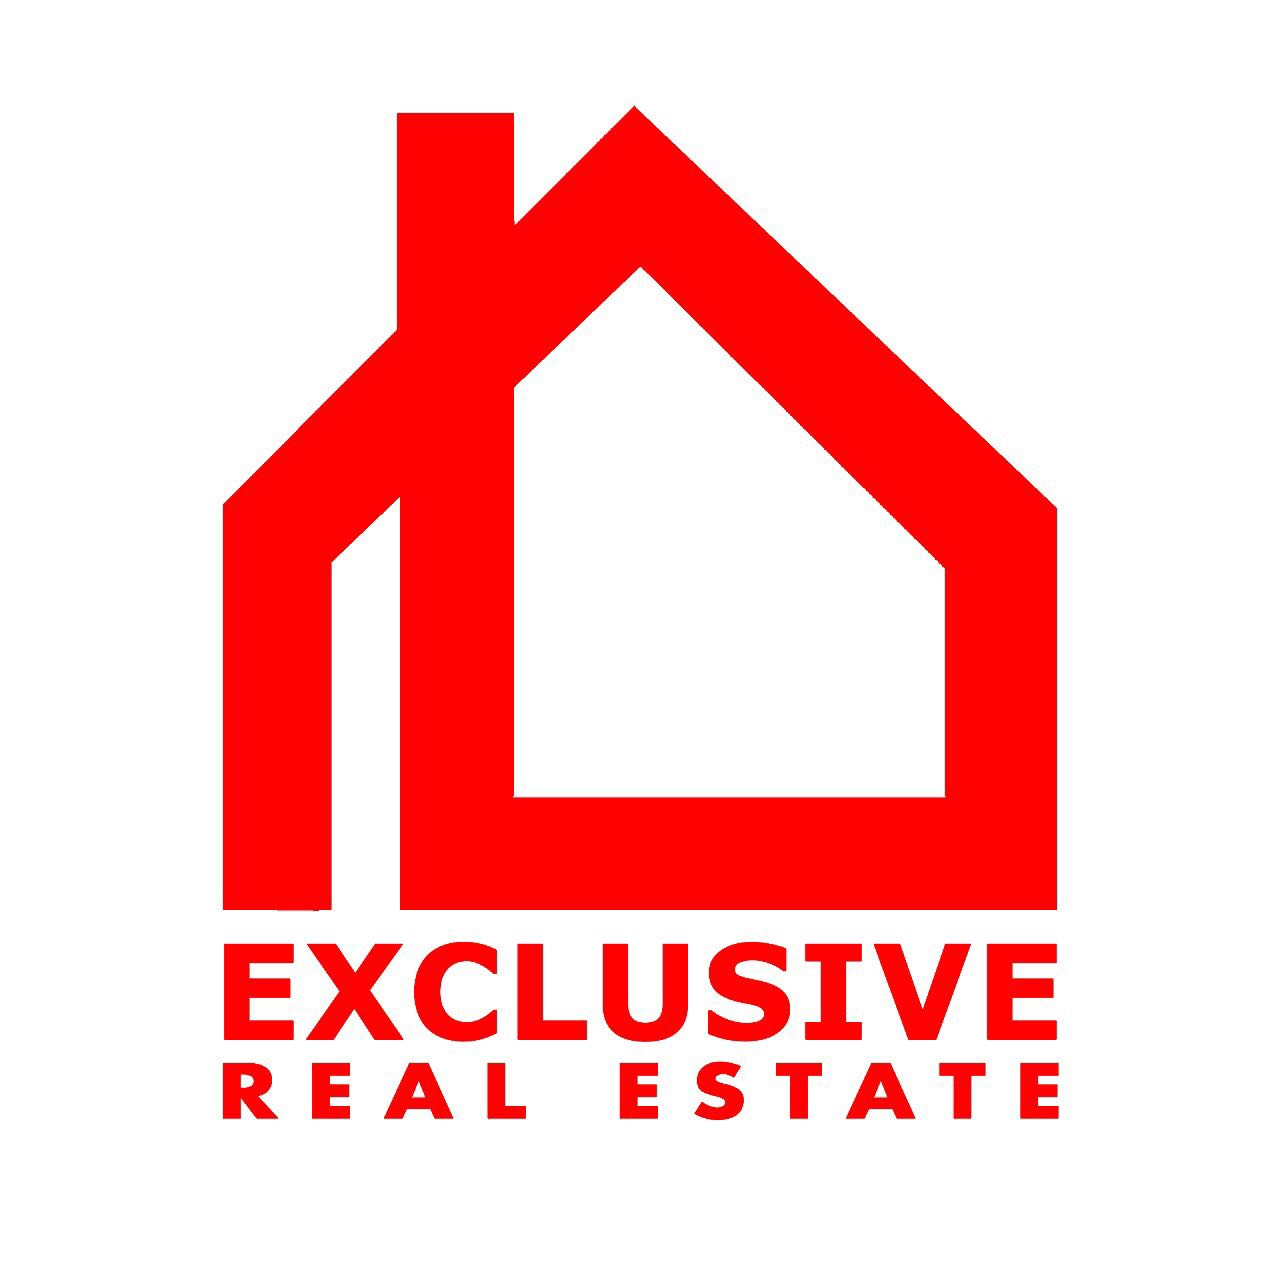 Uncategorized sale home sri lanka ikman ratmalana - House For Sale With 20 Perches Land In Rathmalana 100m From Galle Road Good Residencial Area 1 Addr More